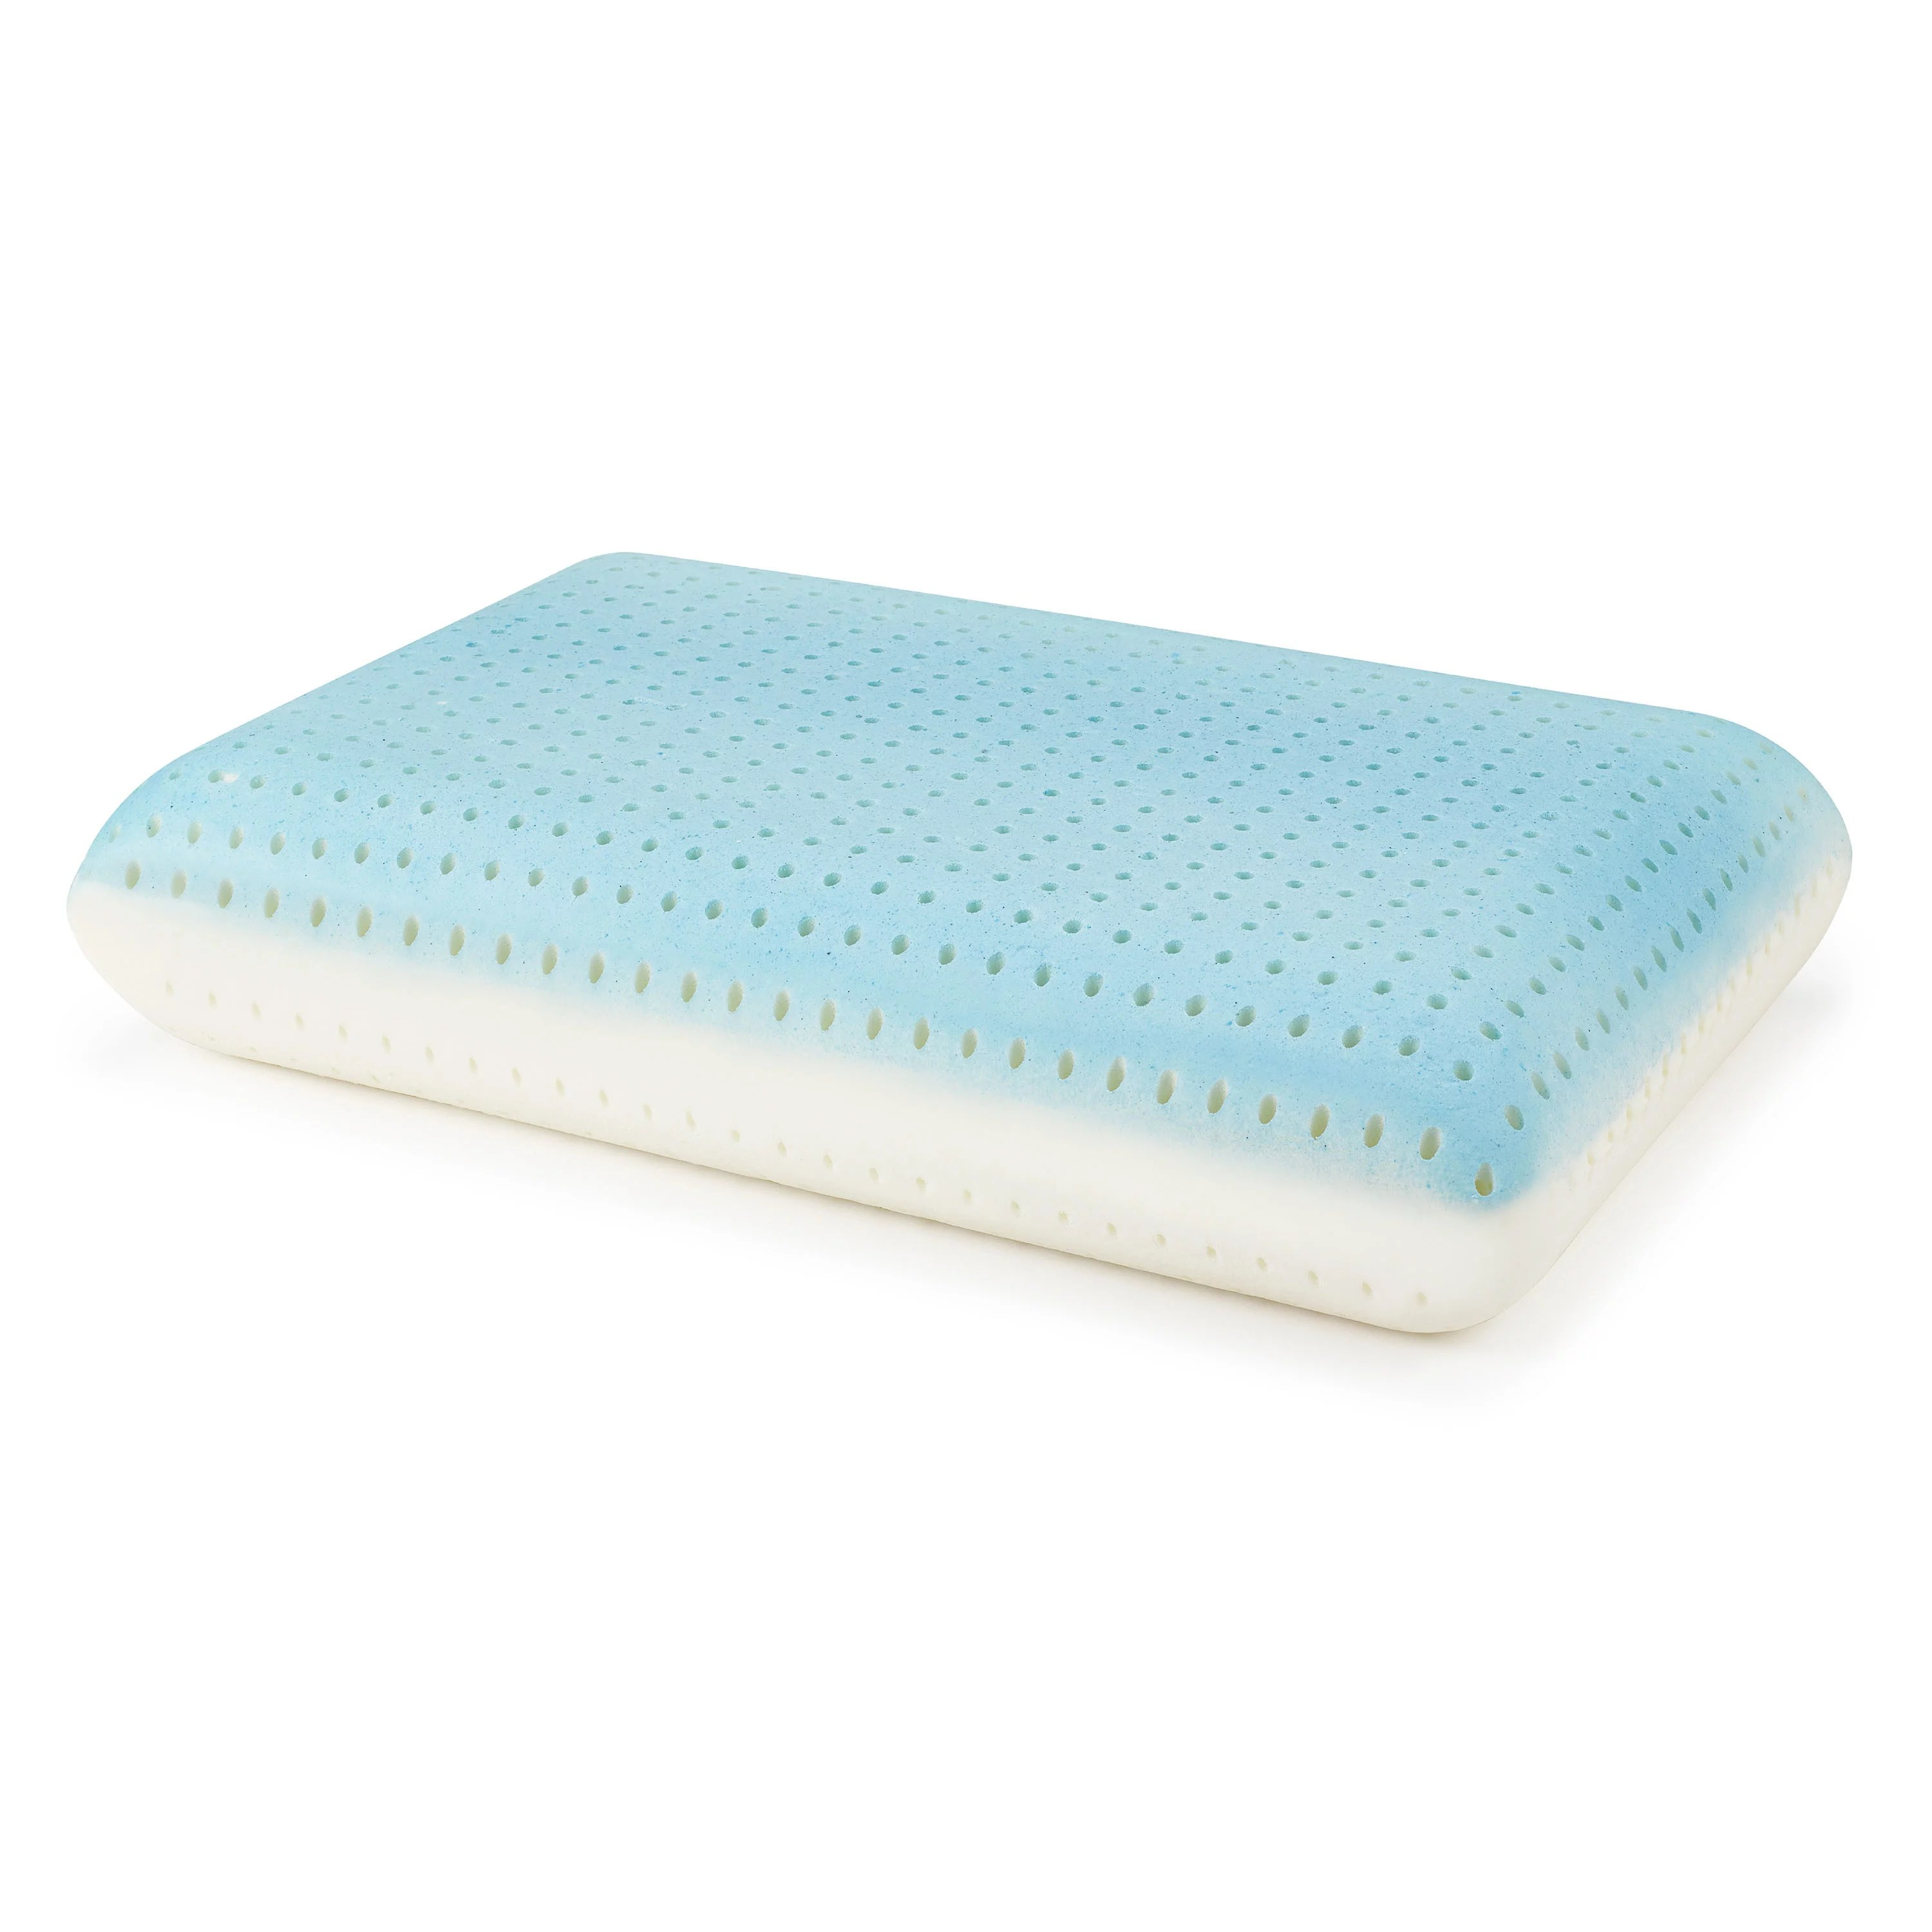 beautyrest silver aquacool memory foam pillow with removable cover walmart com